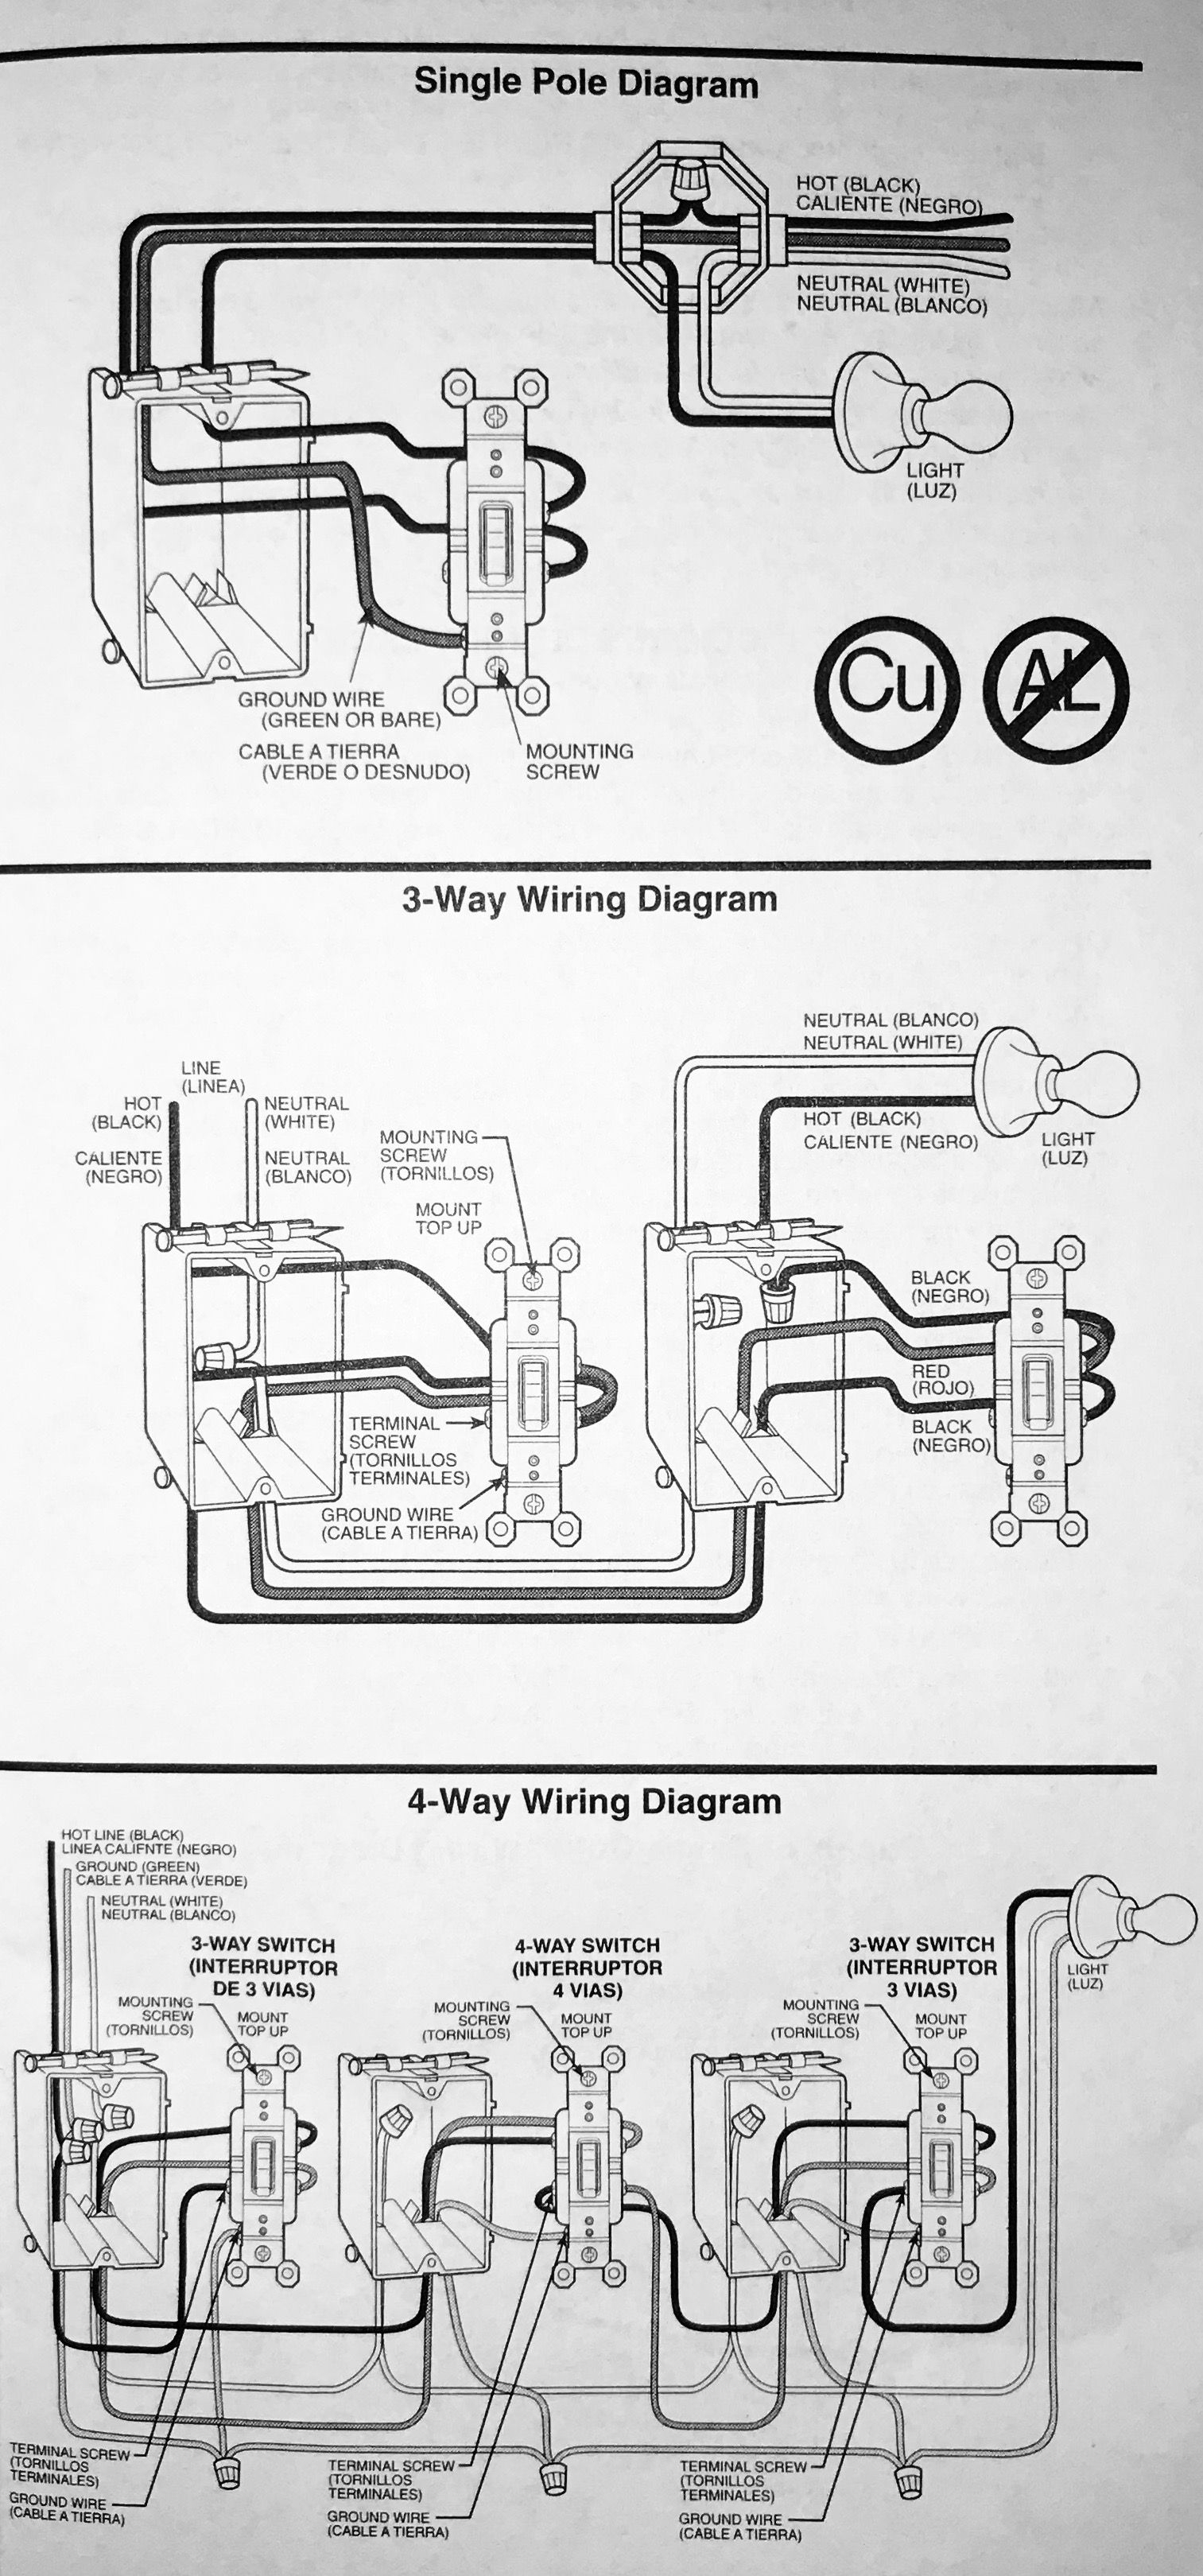 Installation Of Single Pole, 3-Way, & 4-Way Switches - Wiring - 4 Way Wiring Diagram